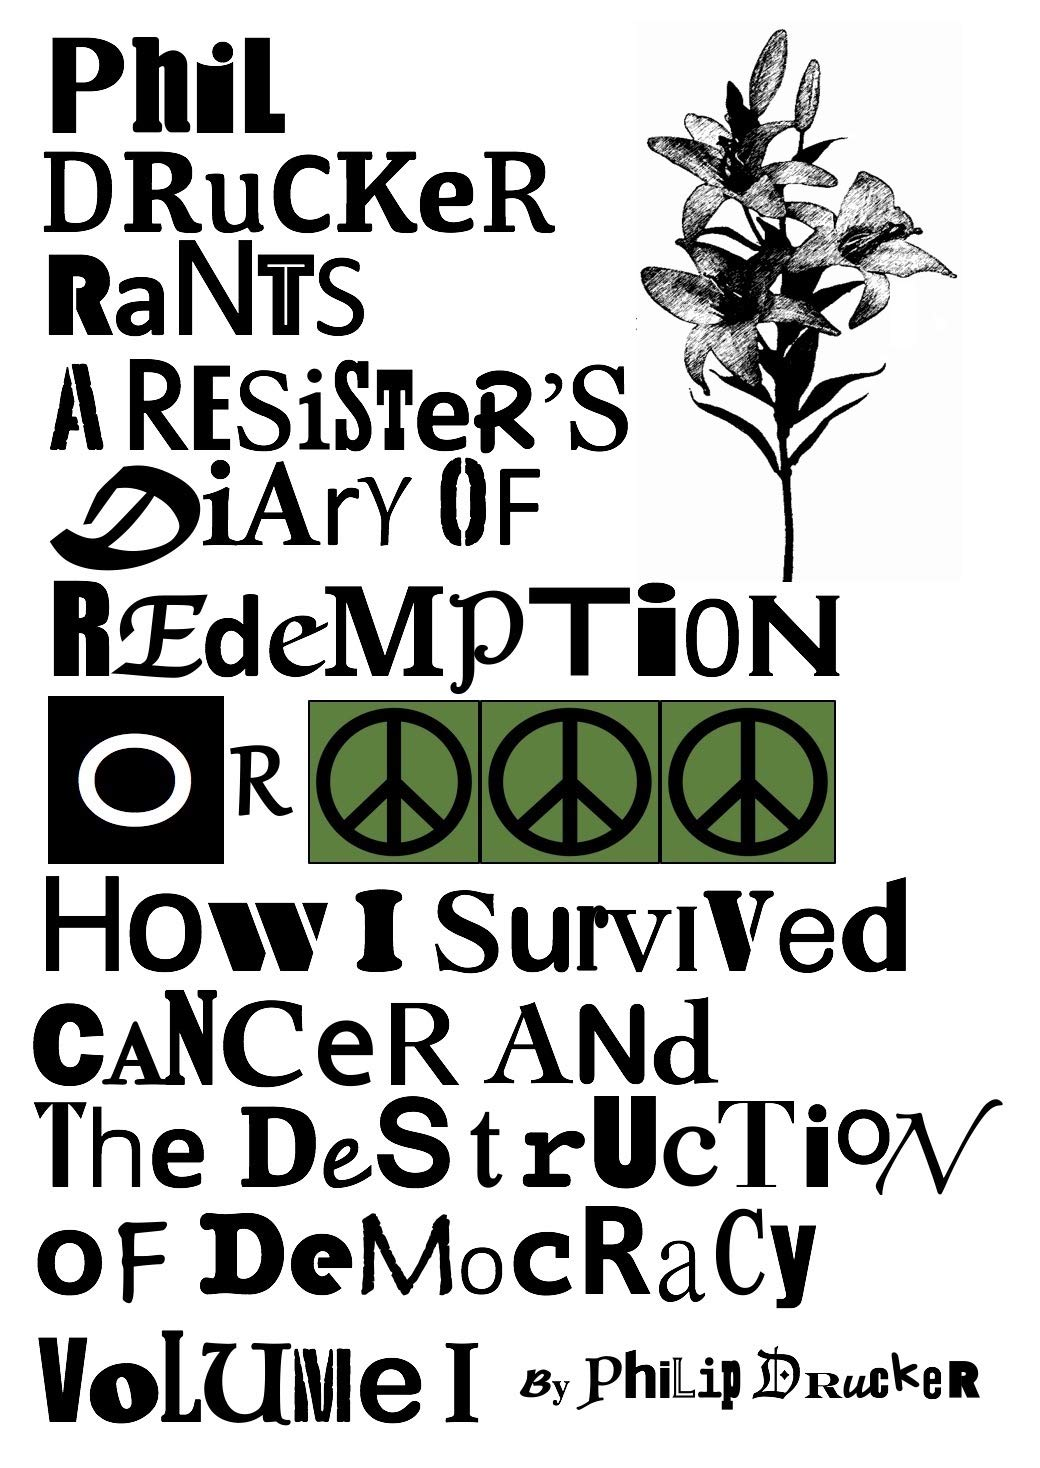 Phil Drucker Rants - Volume I: A Resister's Diary Of Redemption Or How I Survived Cancer And The Destruction Of Democracy